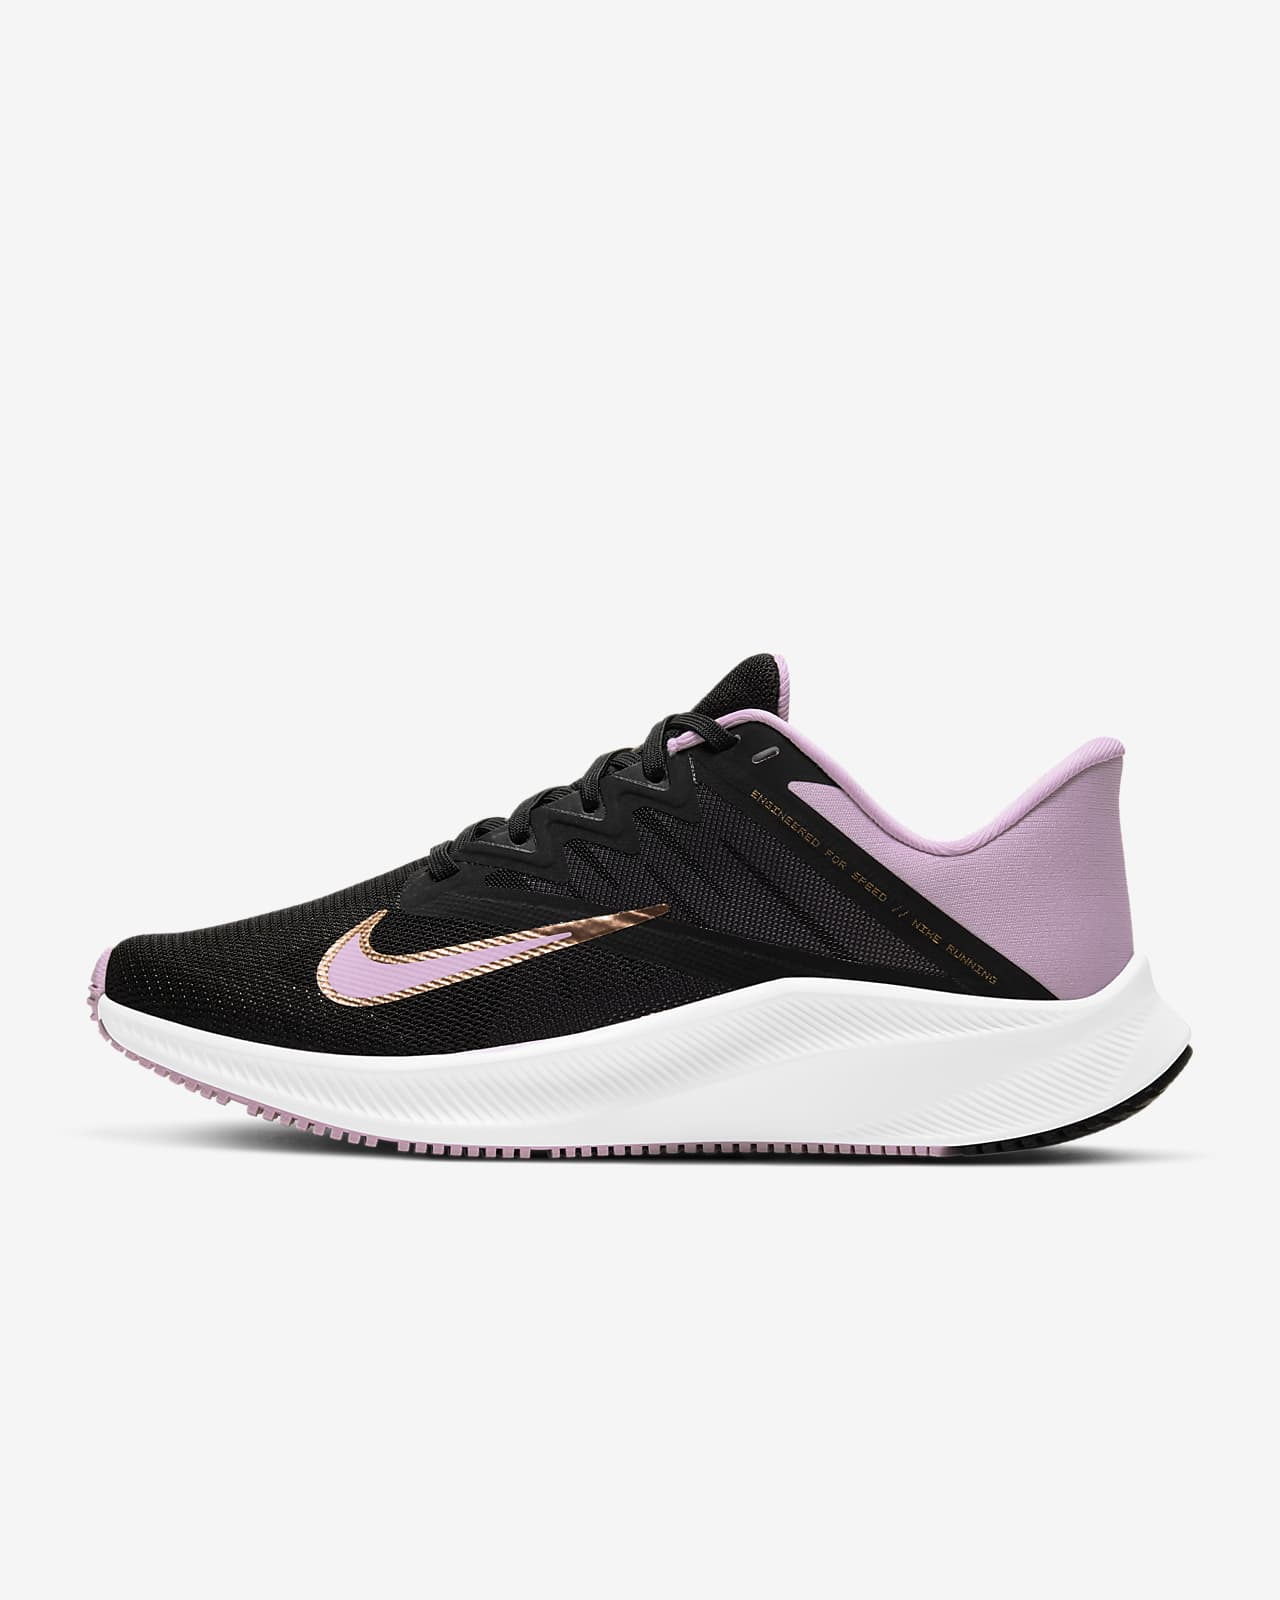 Nike Quest 3 Women's Running Shoe